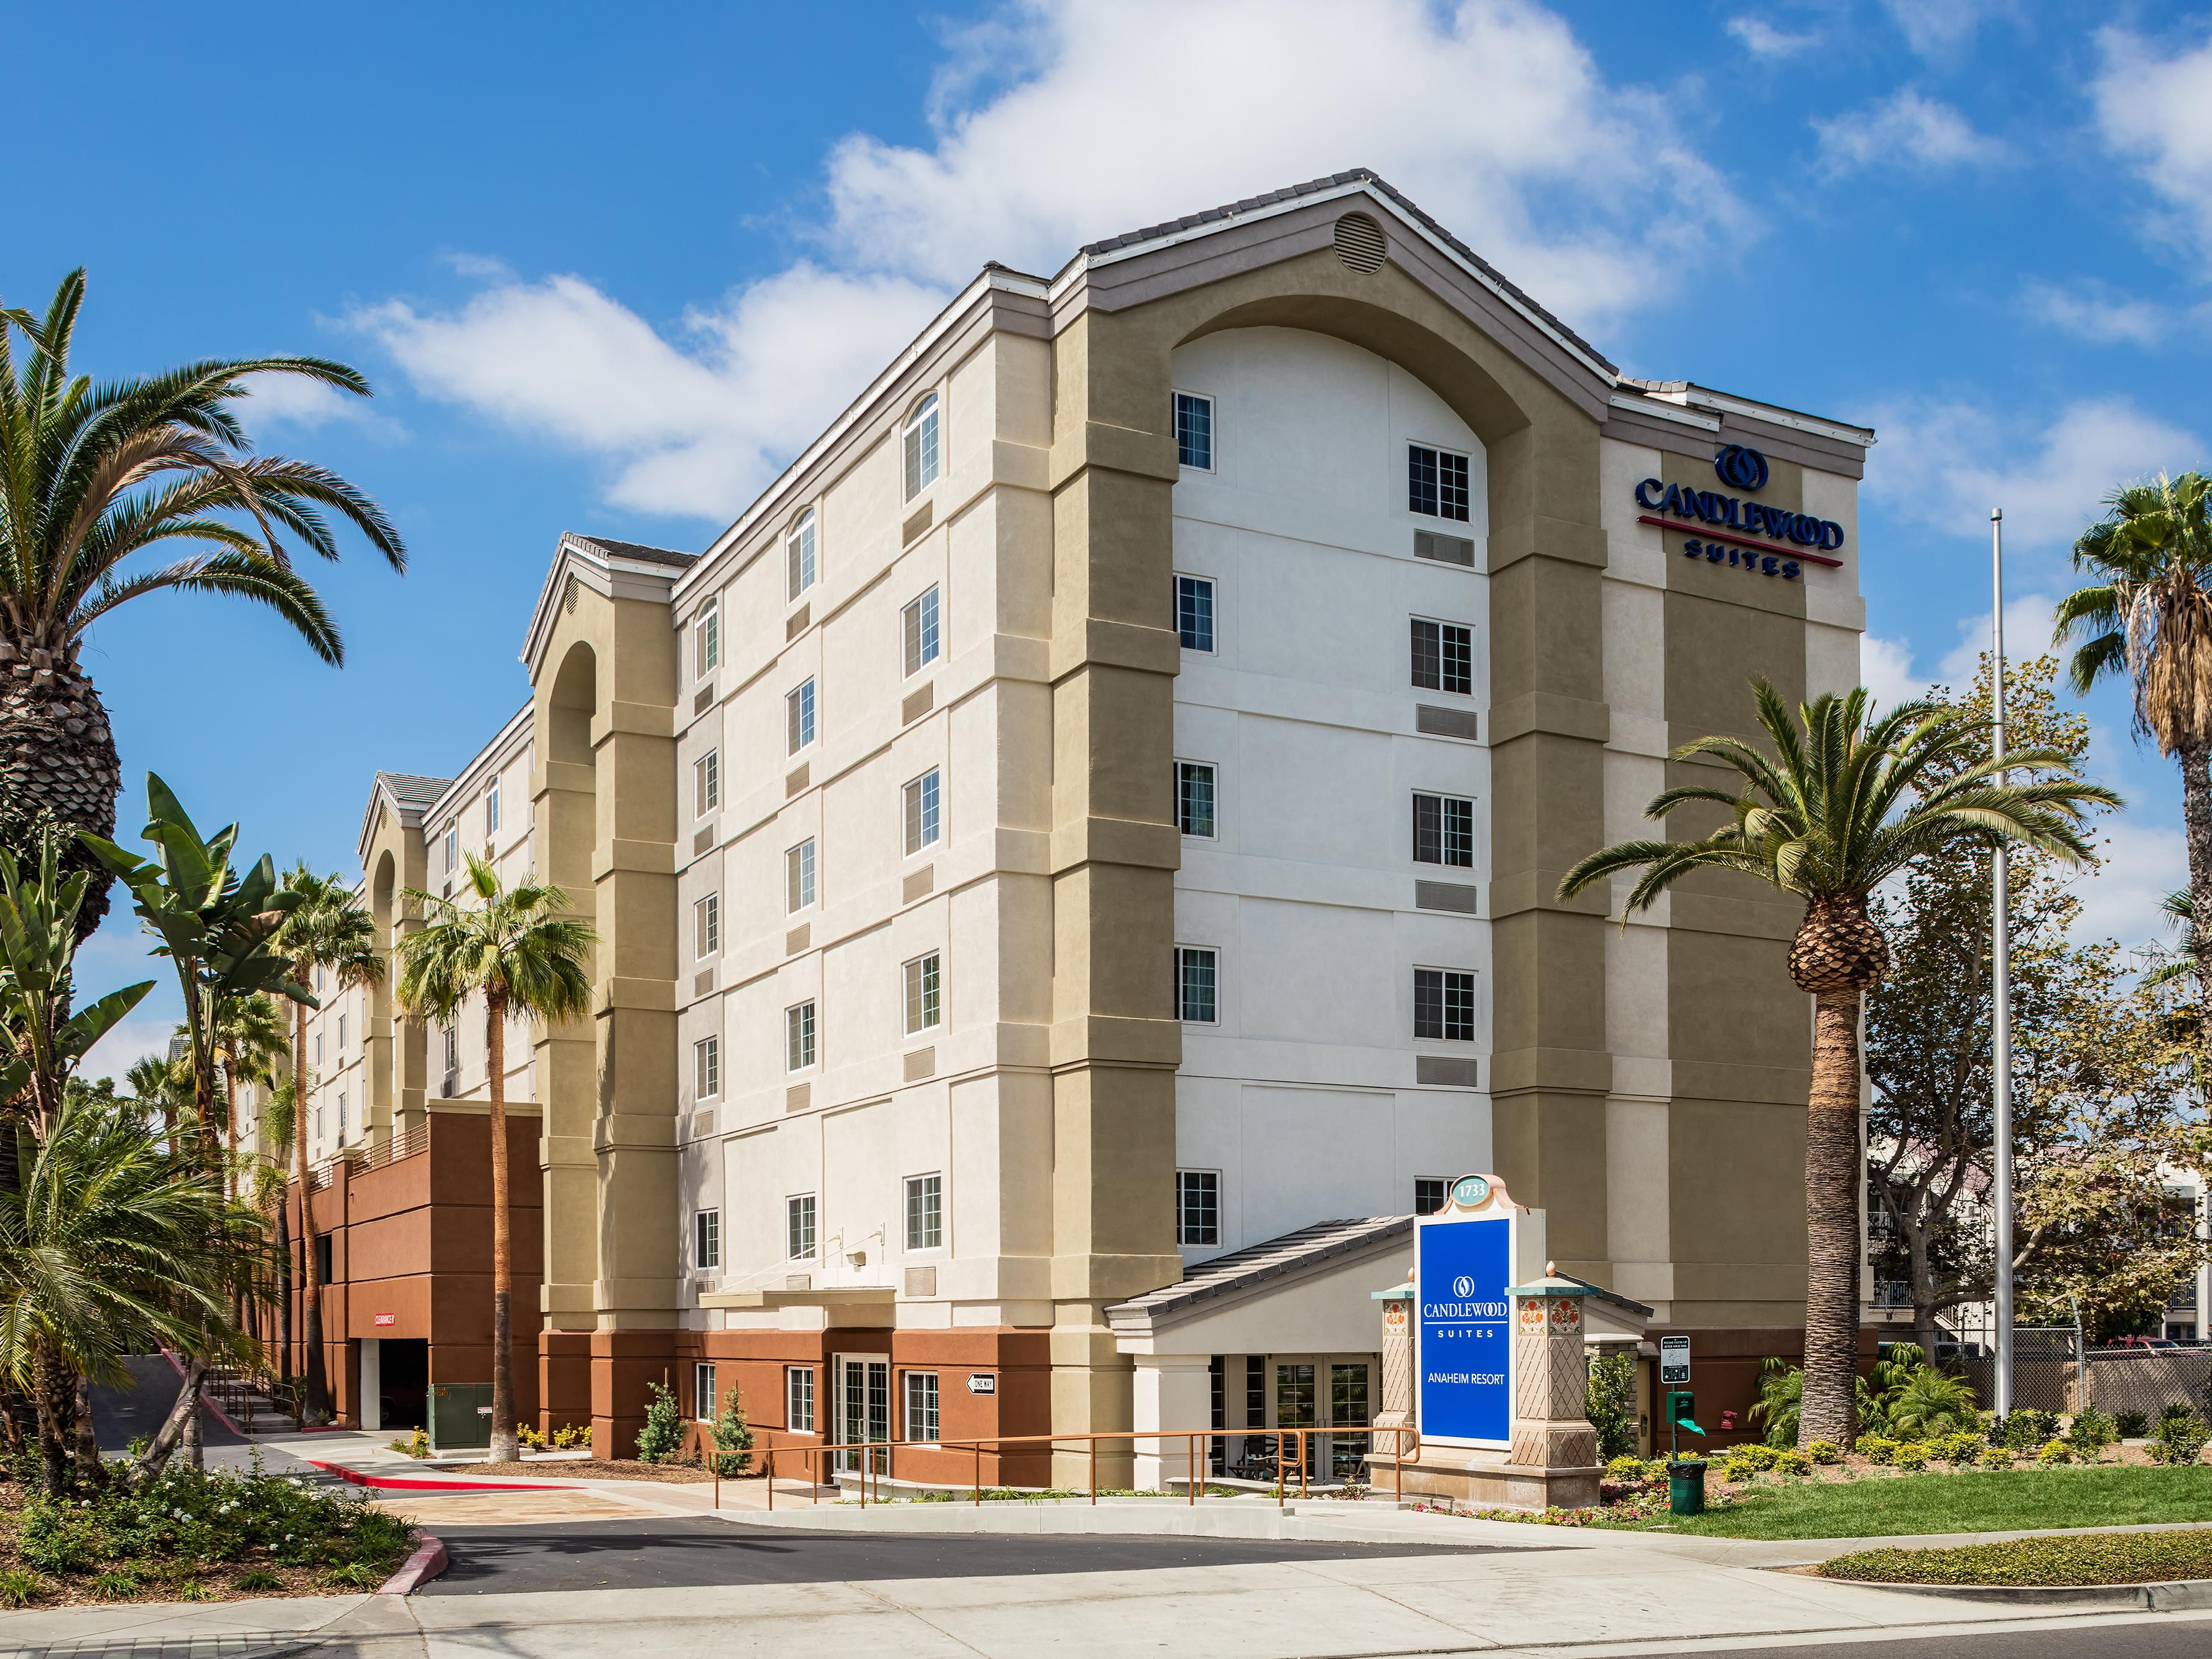 Anaheim Hotels Candlewood Suites Resort Area Extended Stay Hotel In California